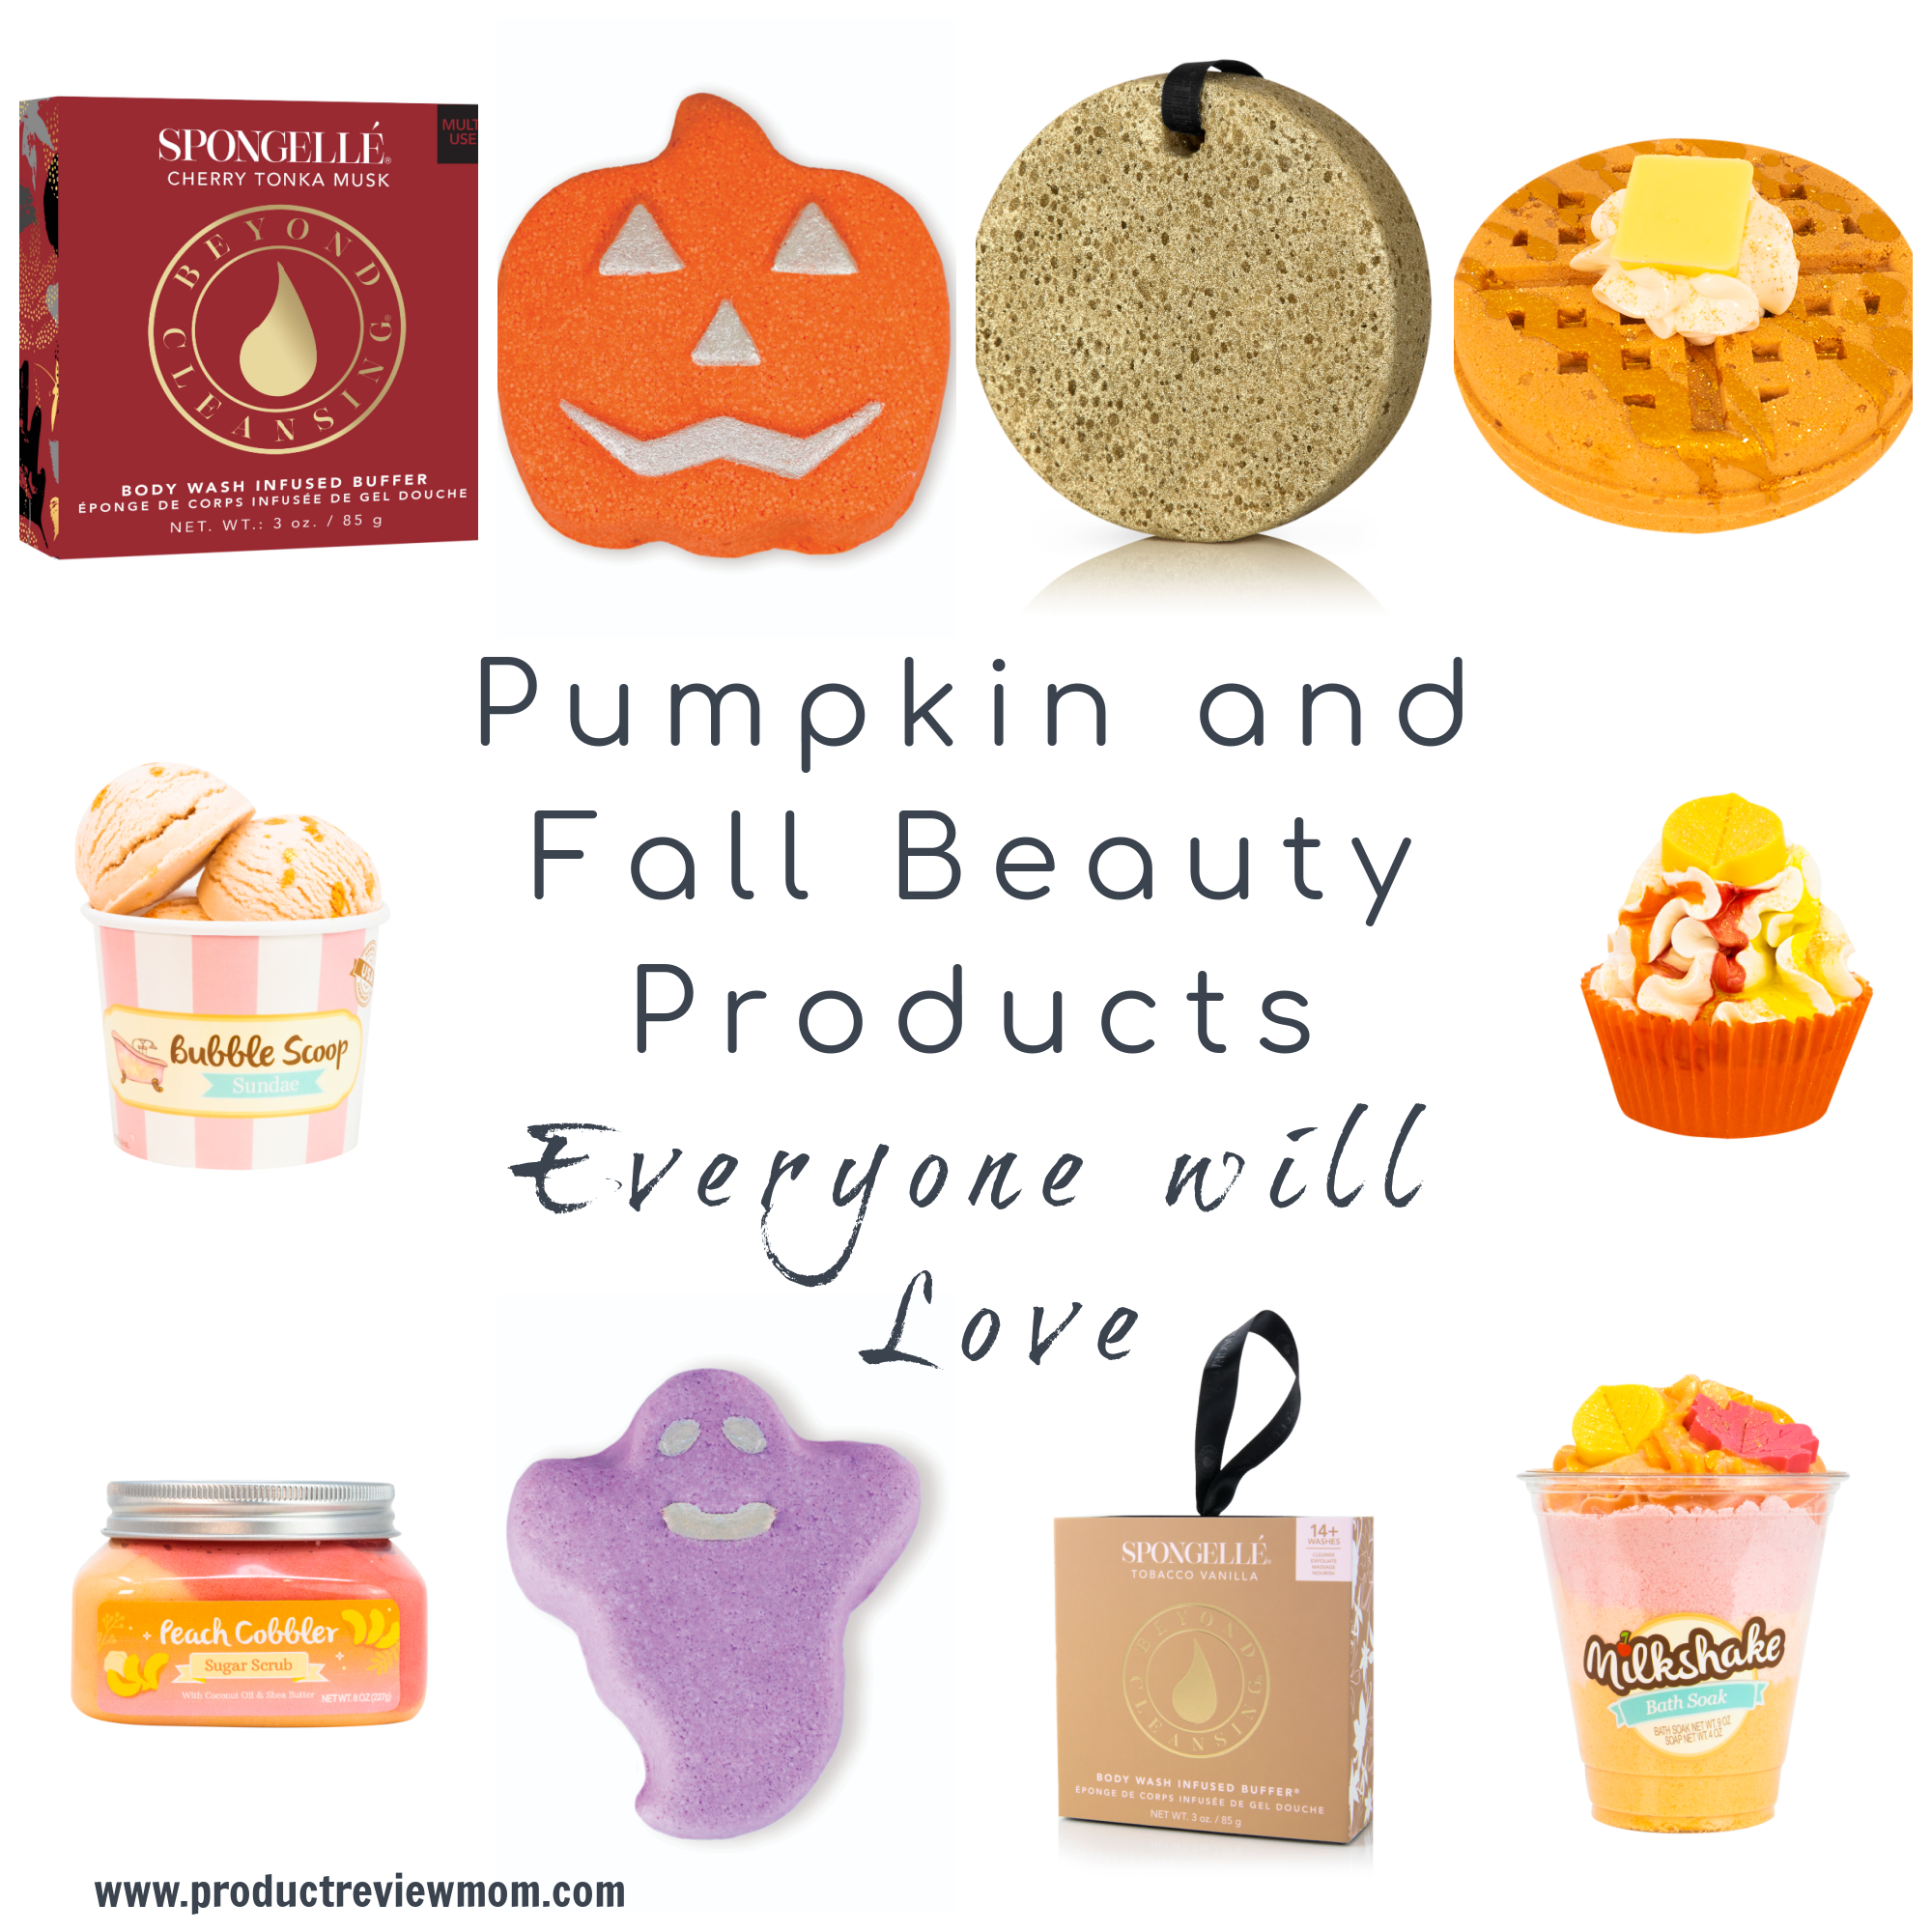 Pumpkin and Fall Beauty Products Everyone will Love